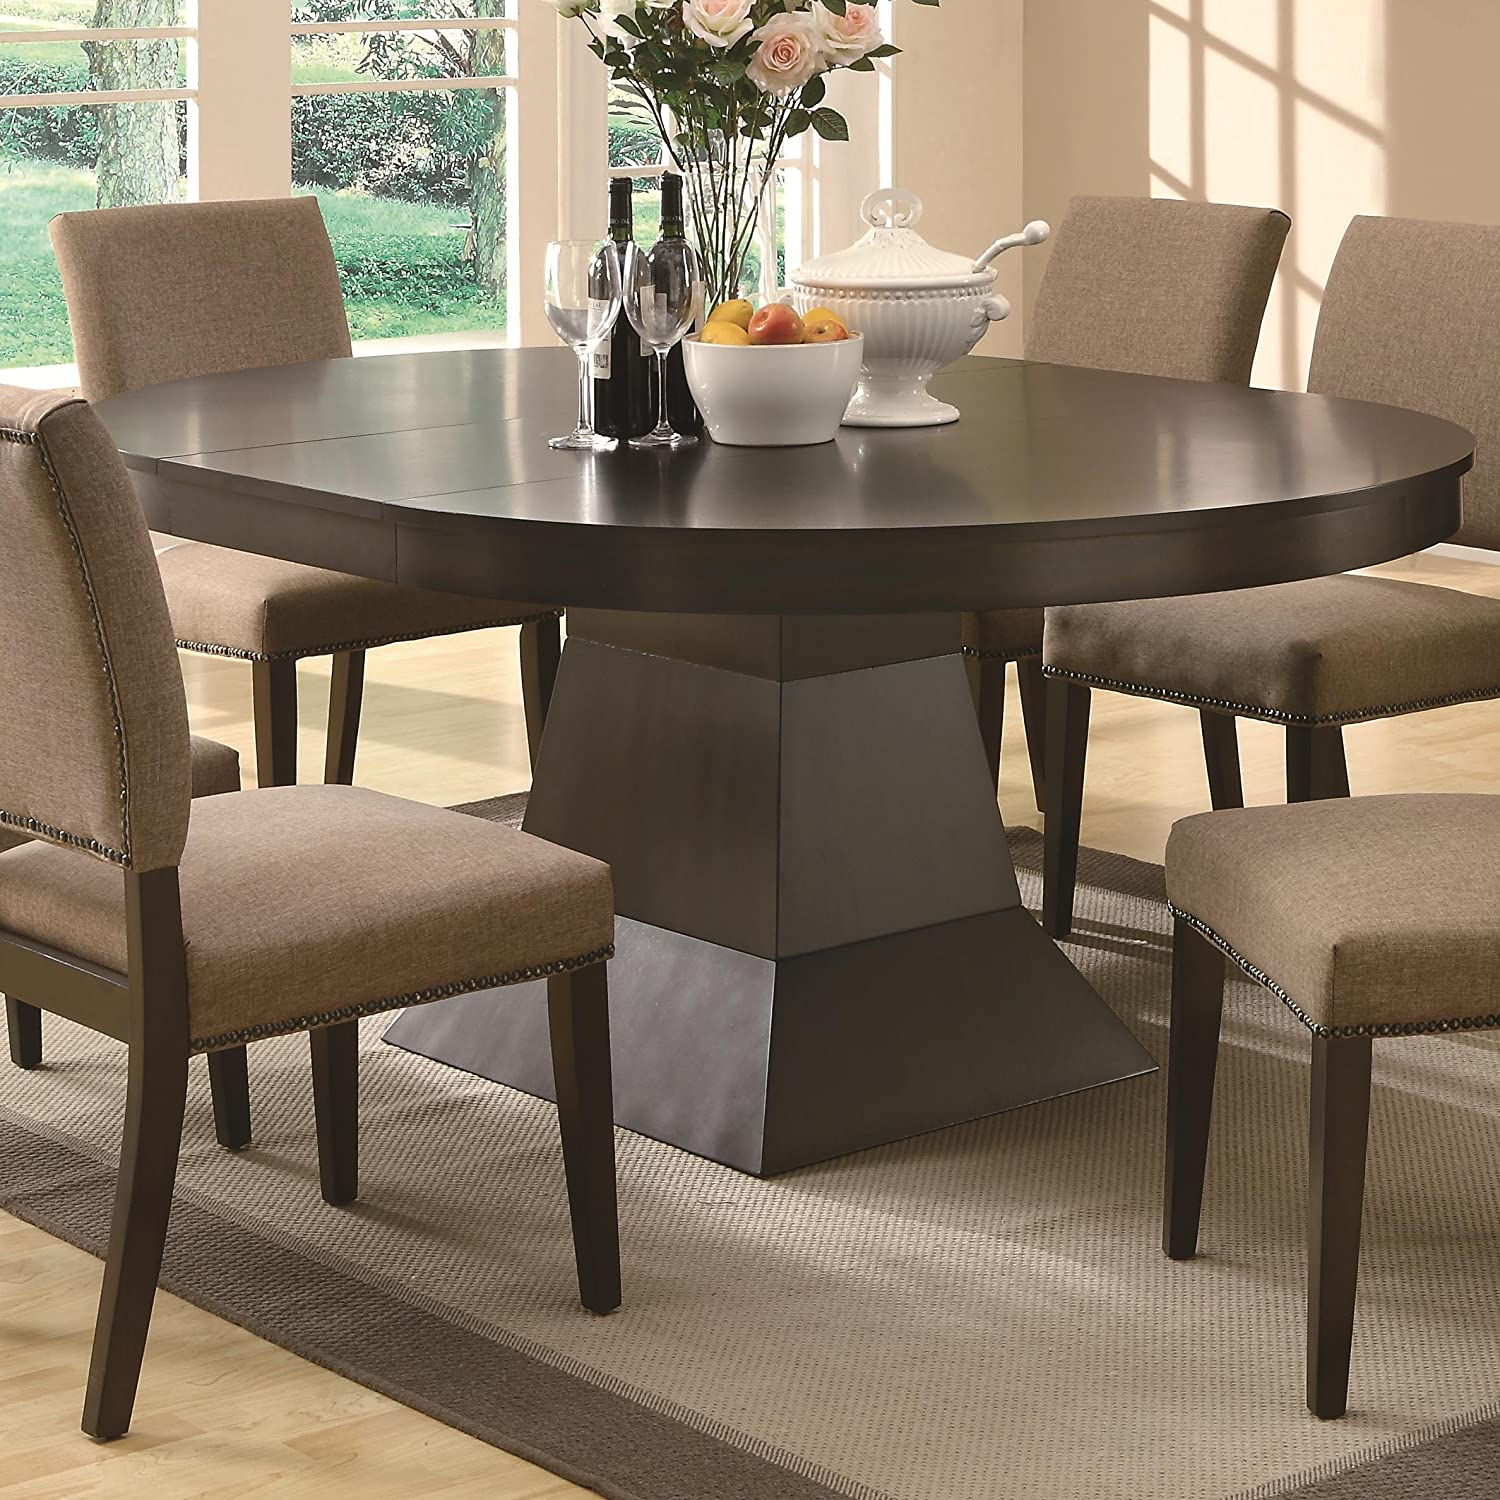 Amazon.com - Myrtle Dining Oval Table w/ Extension In Coffee Brown ...